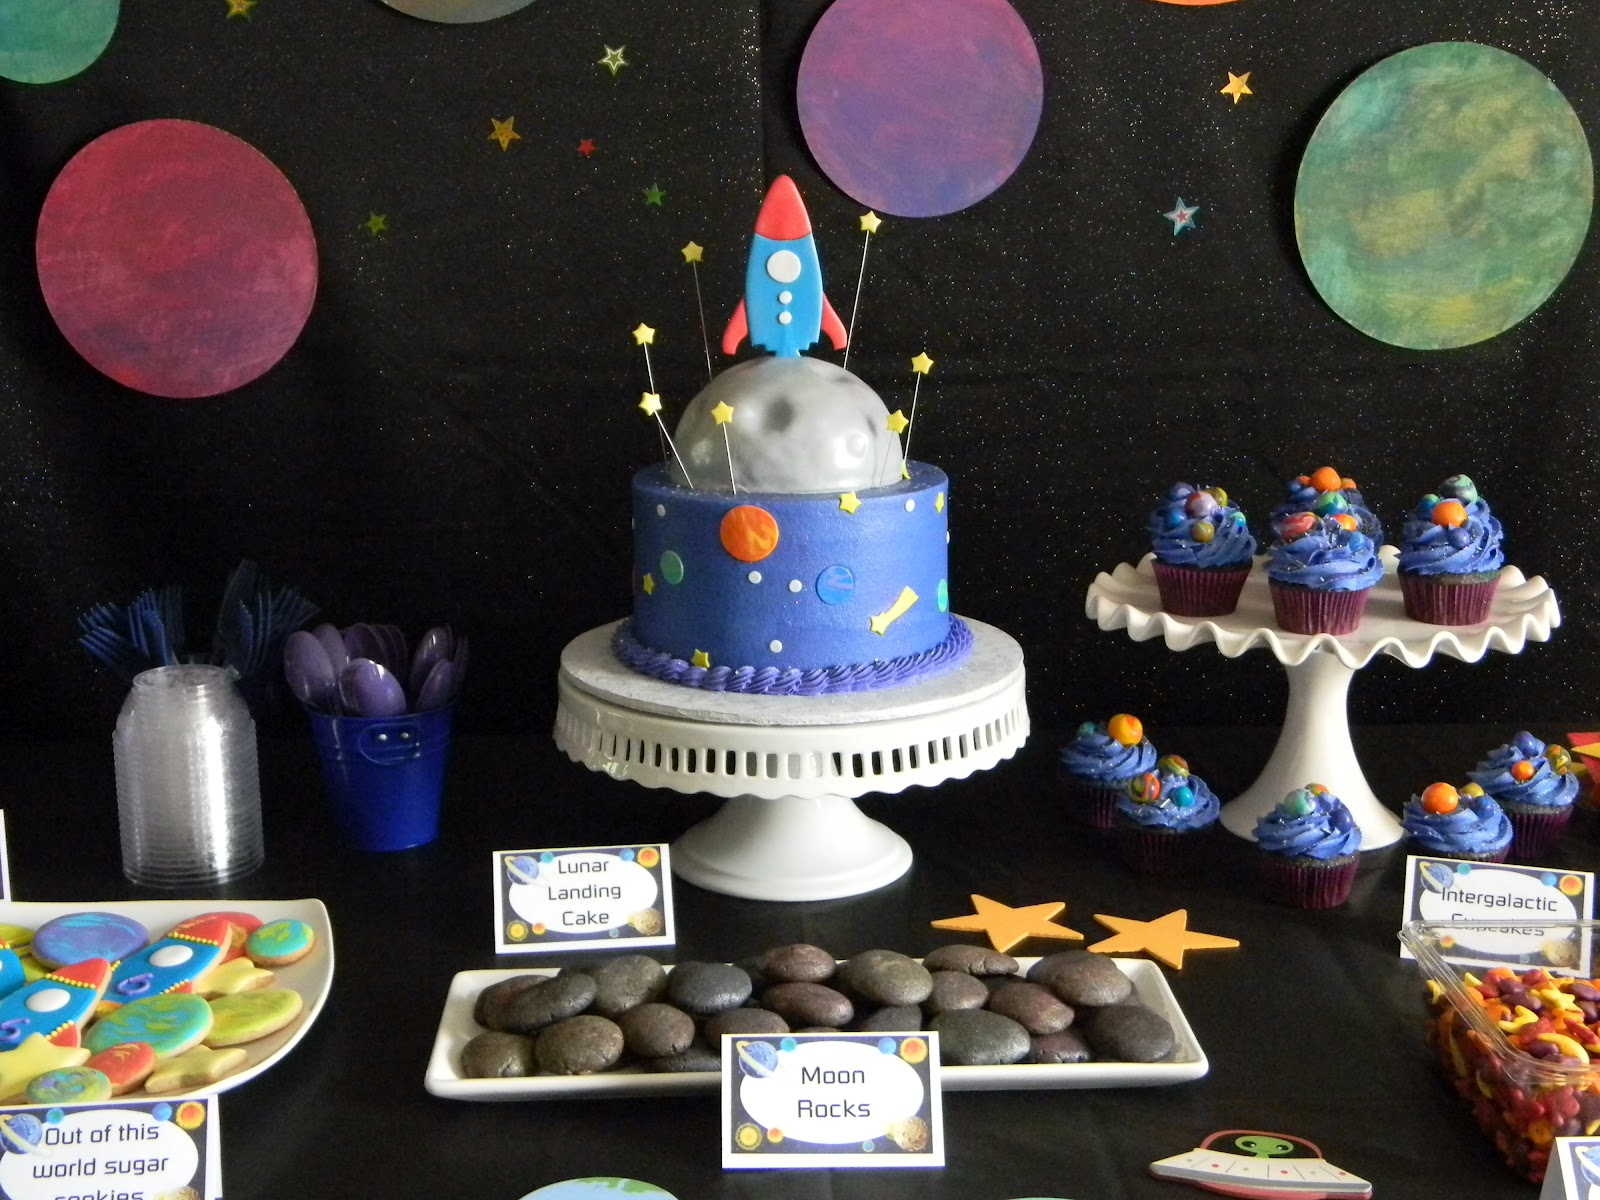 Frost your cake july 2012 for Outer space cake design